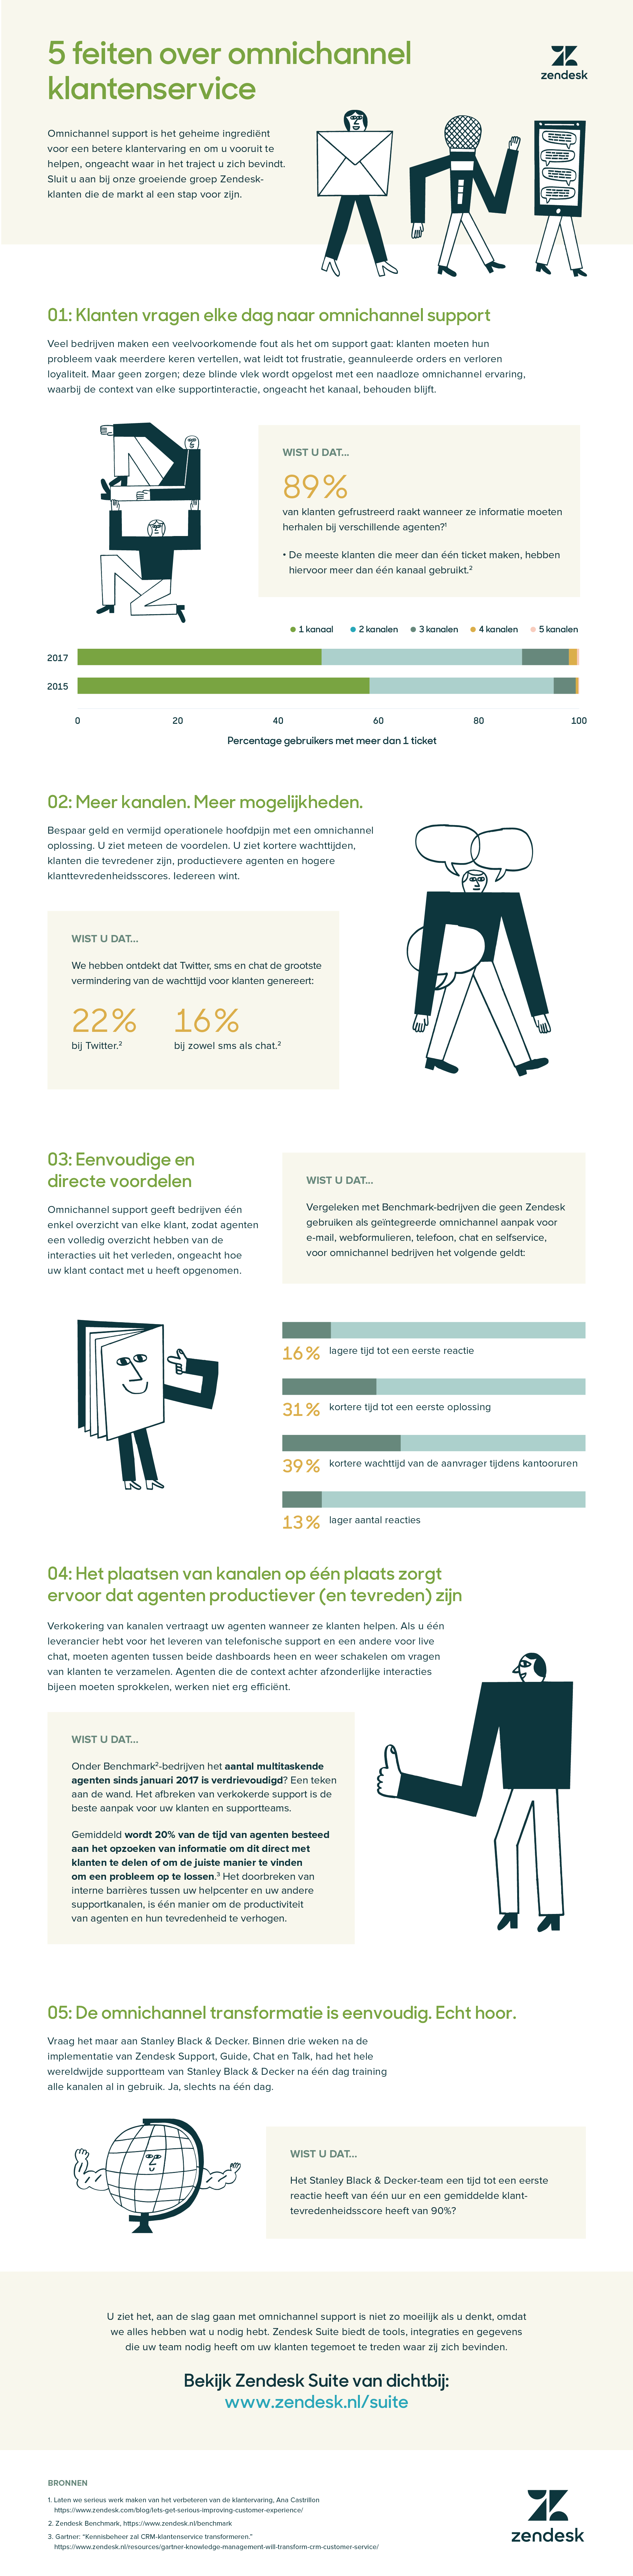 5 leuke feiten over omnichannel support